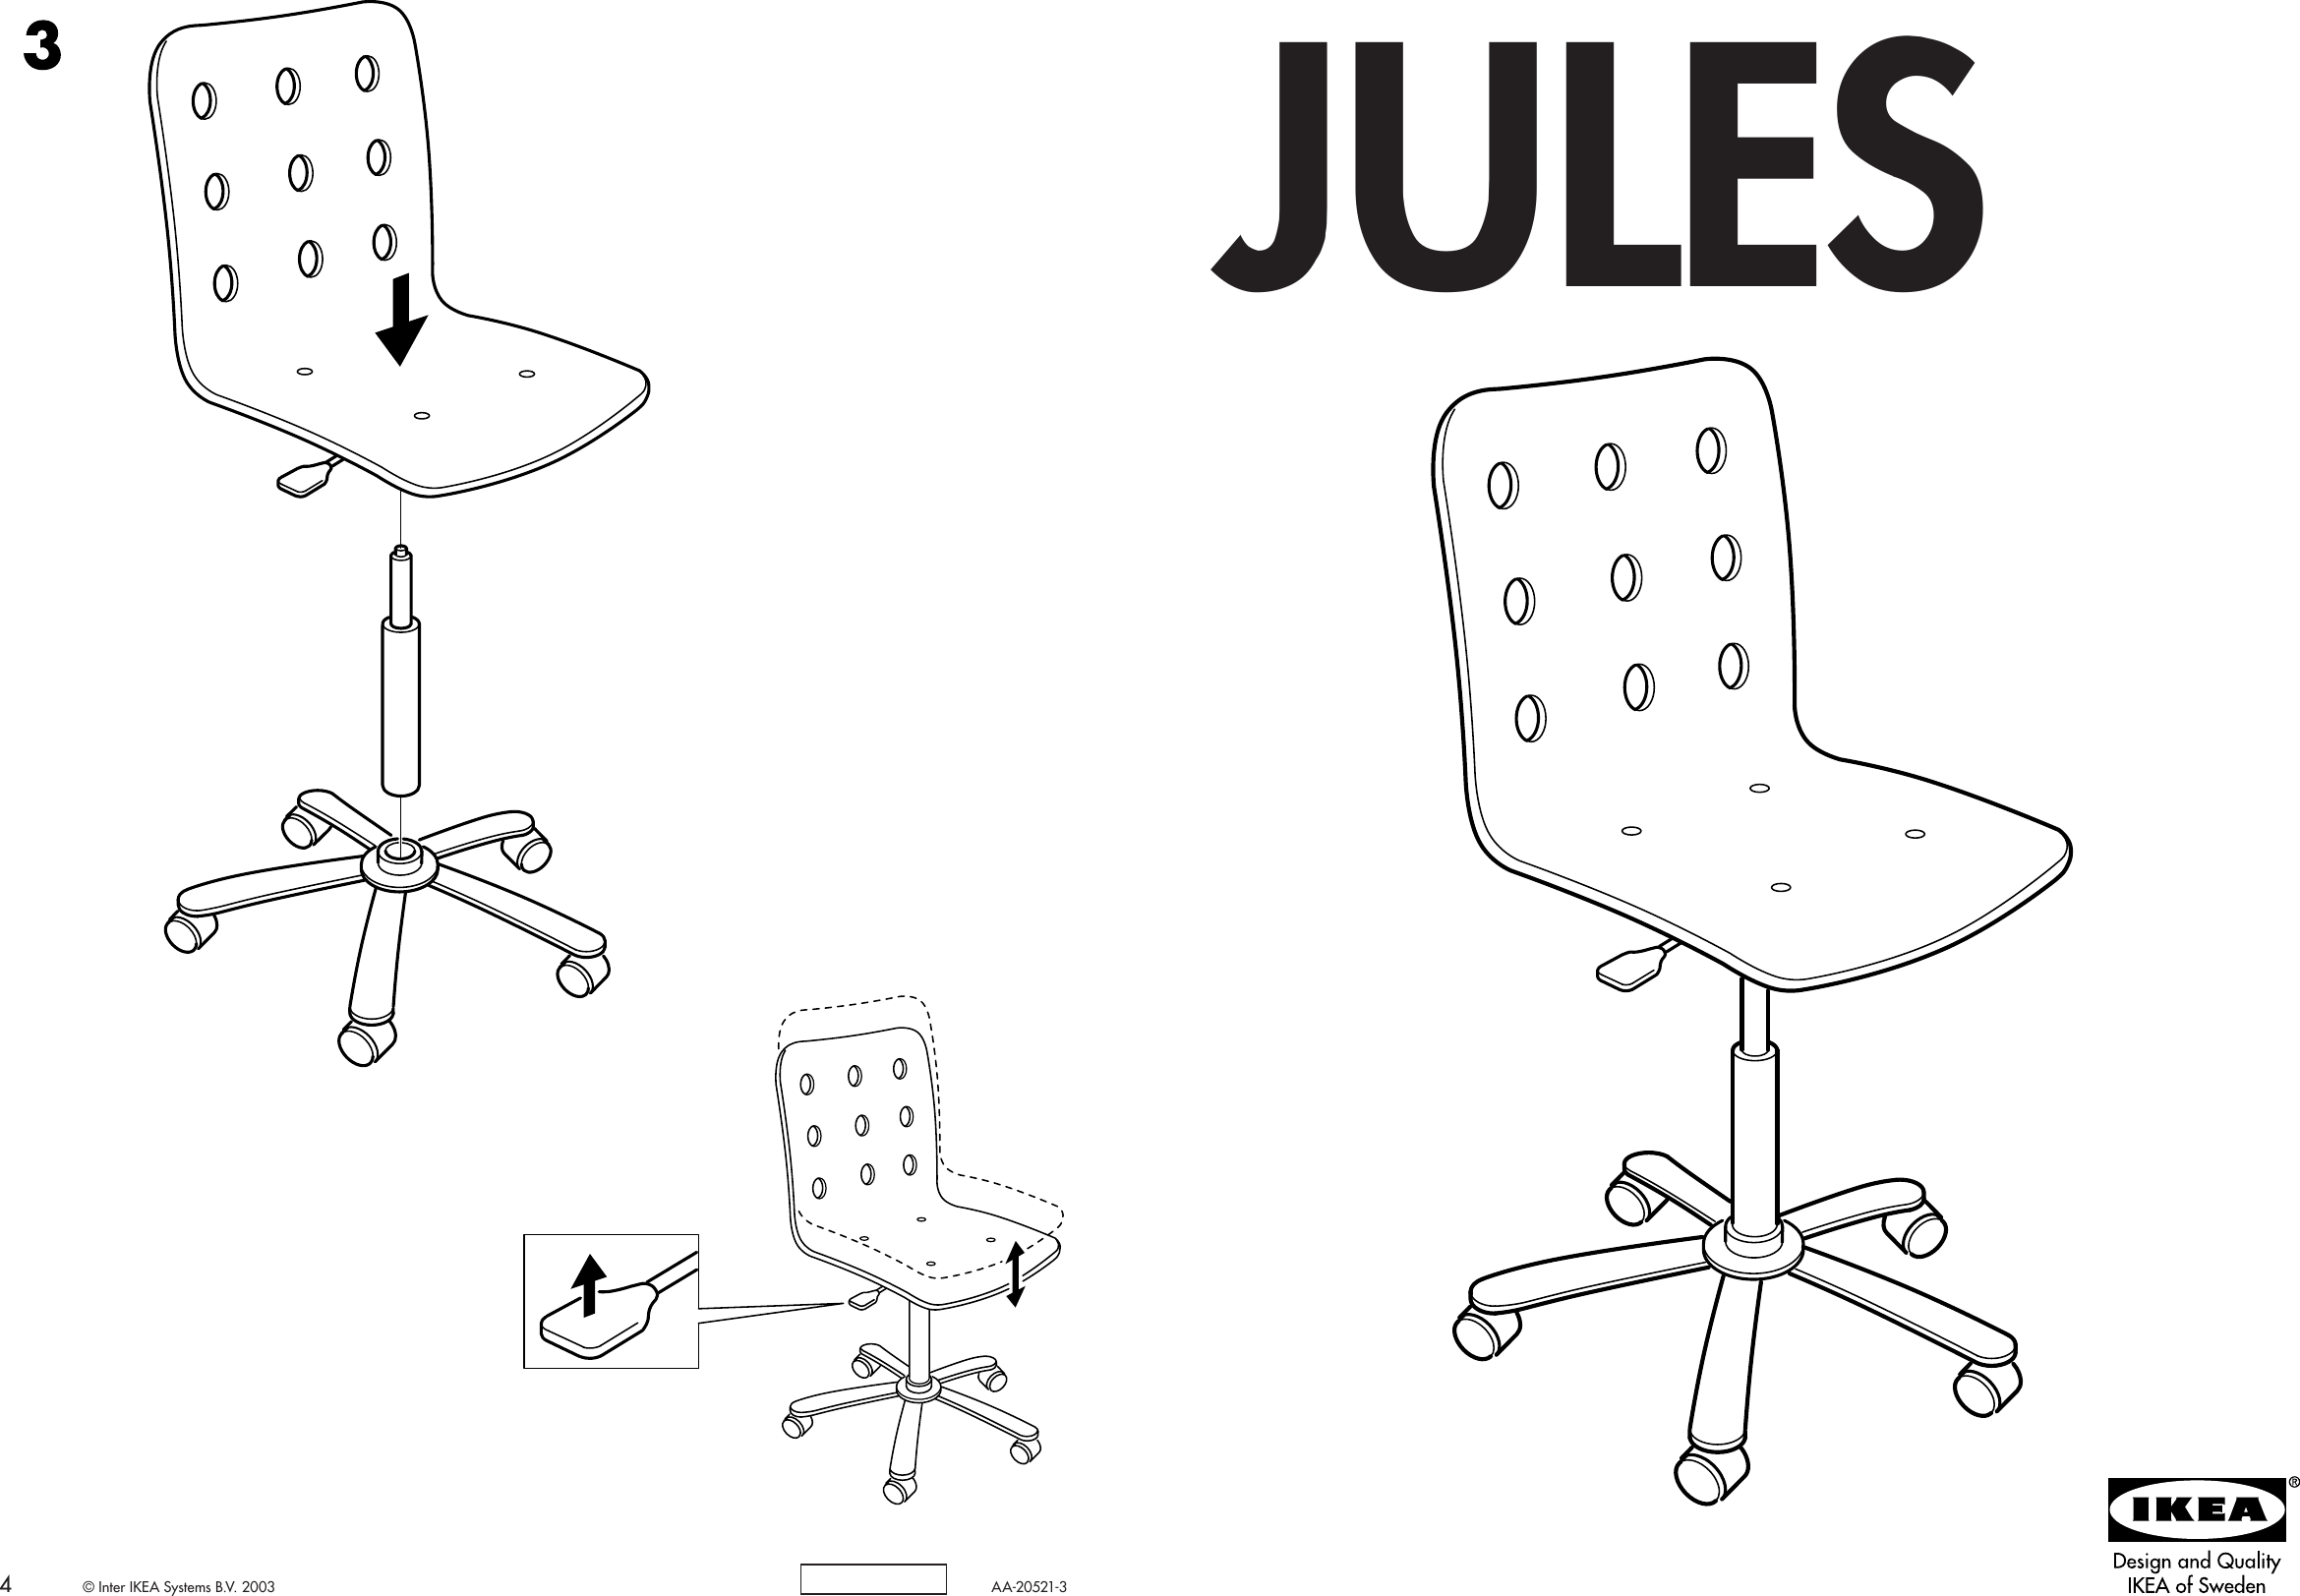 ikea jules chair replacement wood spindles for chairs frame swivel assembly instruction 2